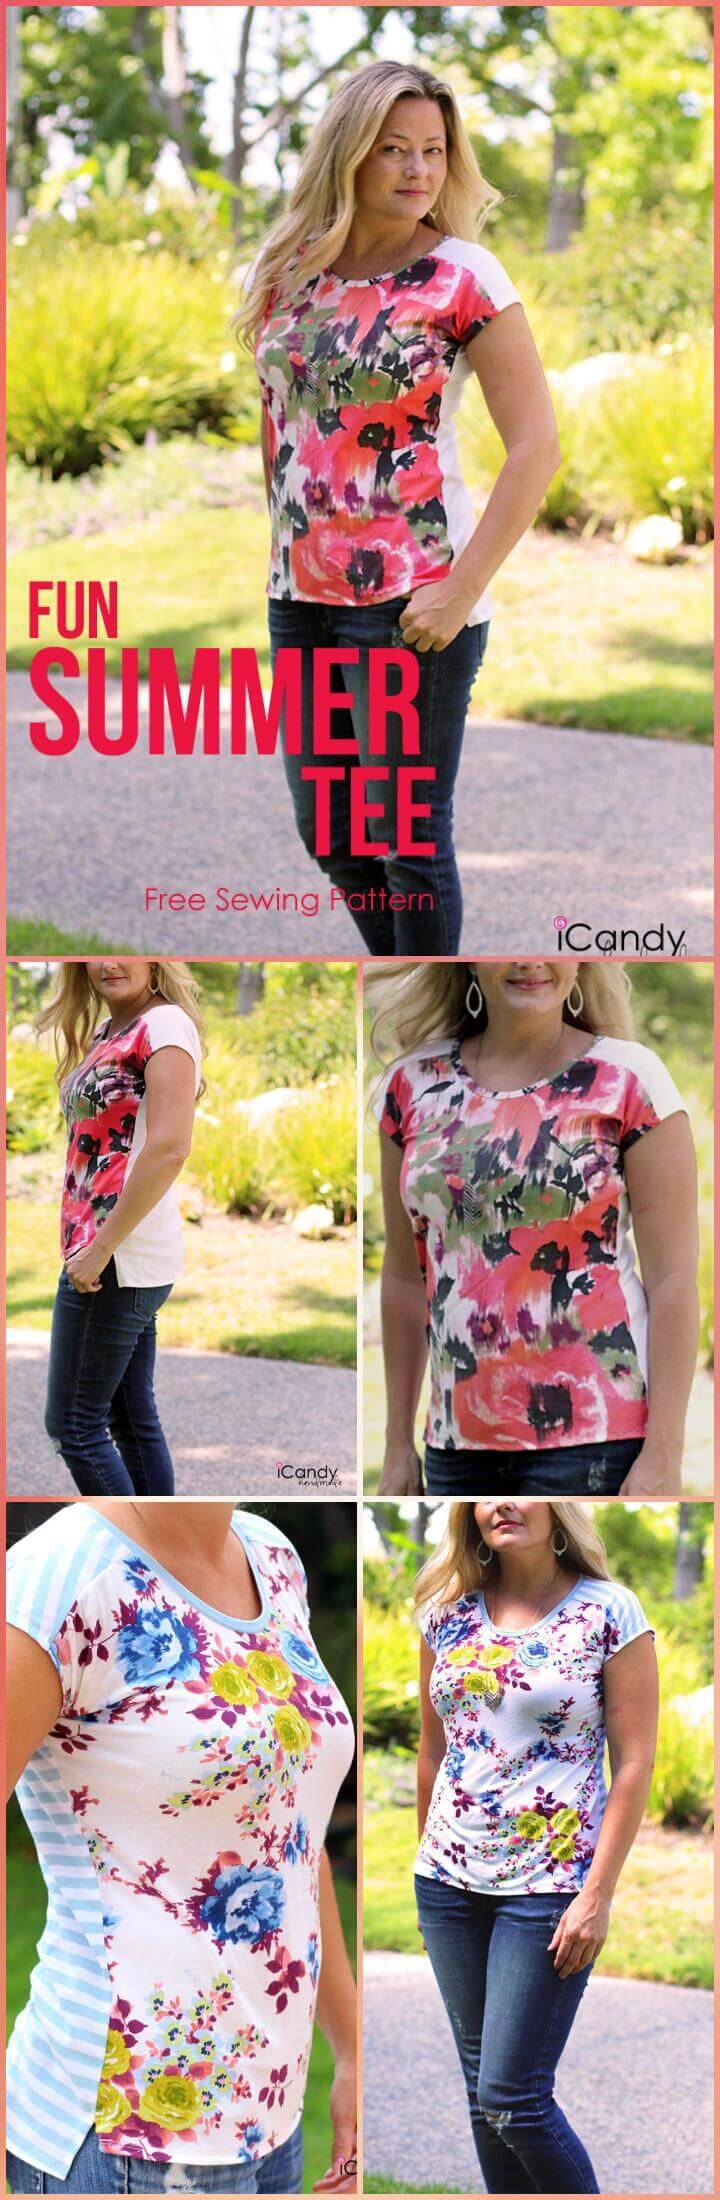 beautiful fun summer tee